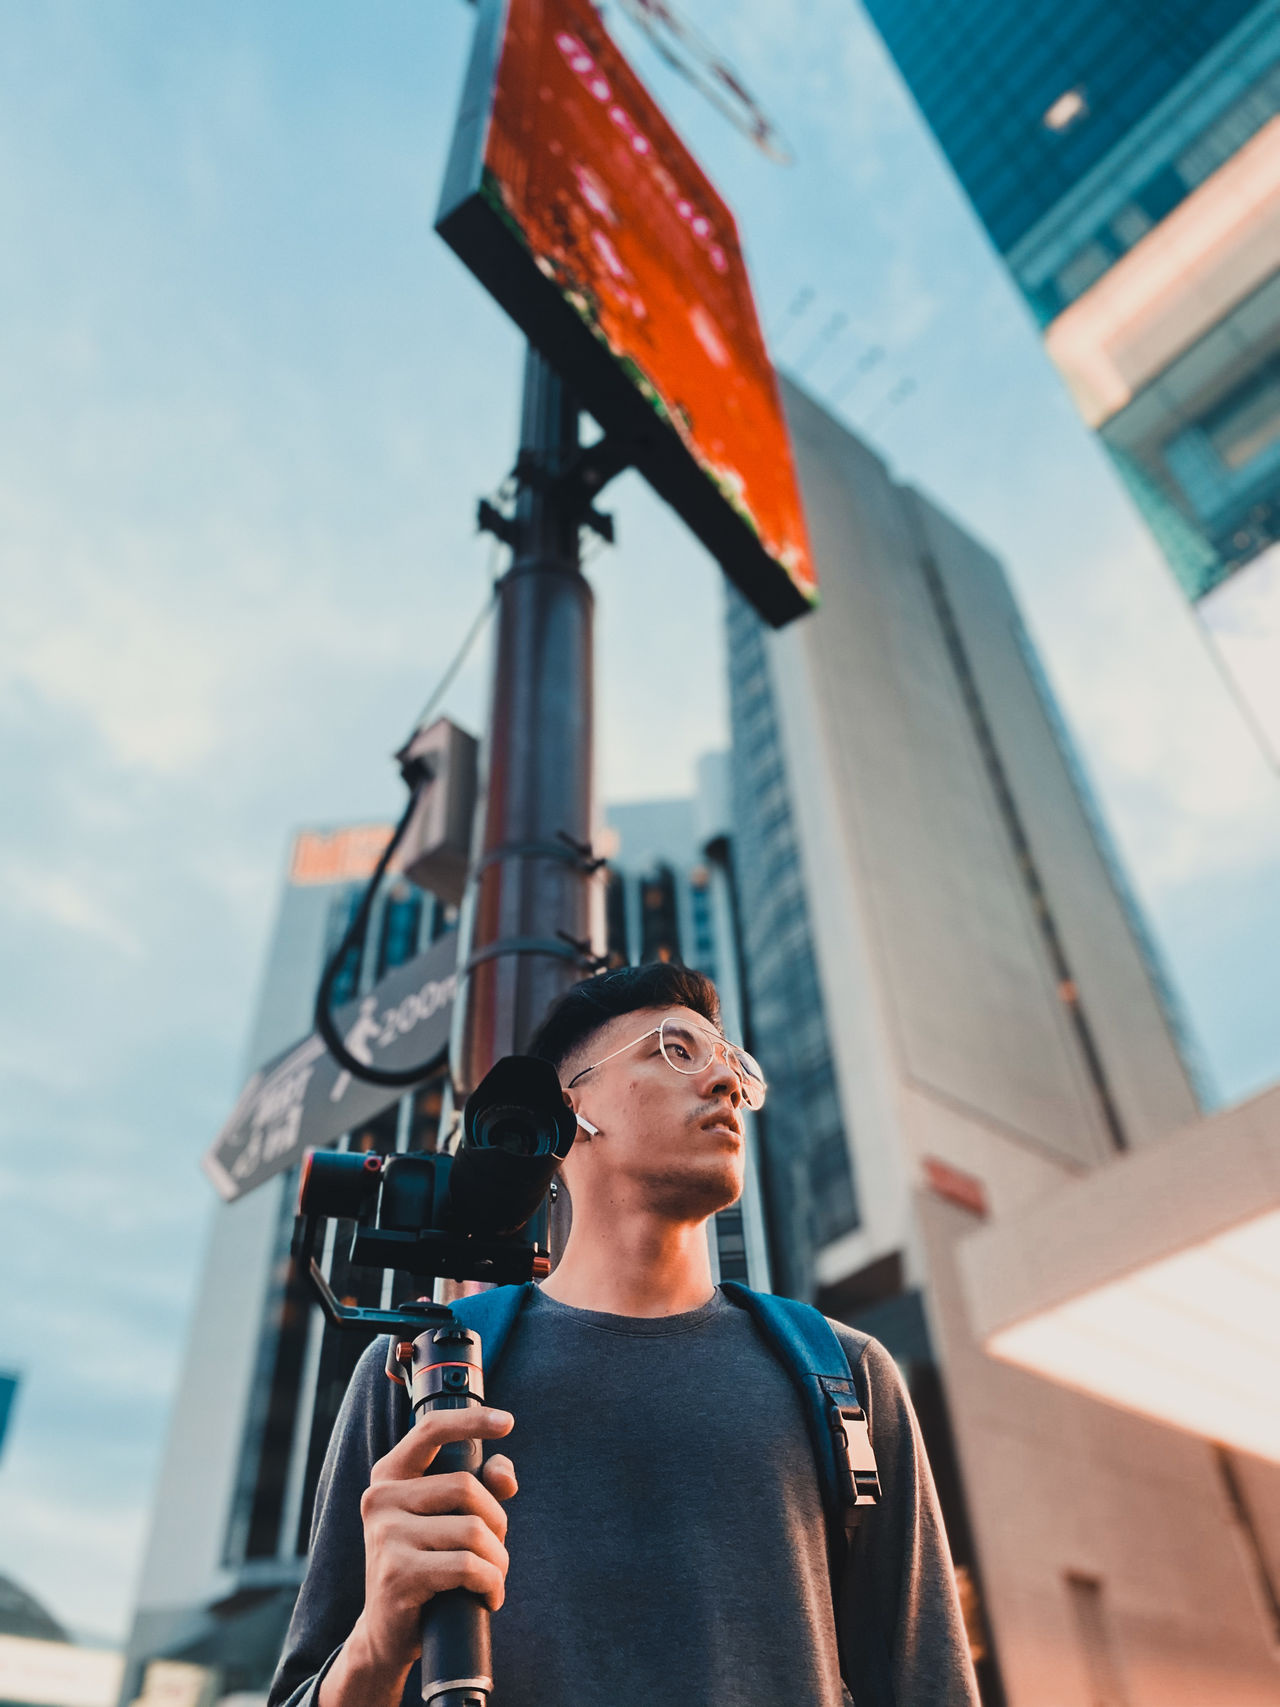 Low angle view of man holding camera standing outside buildings in city